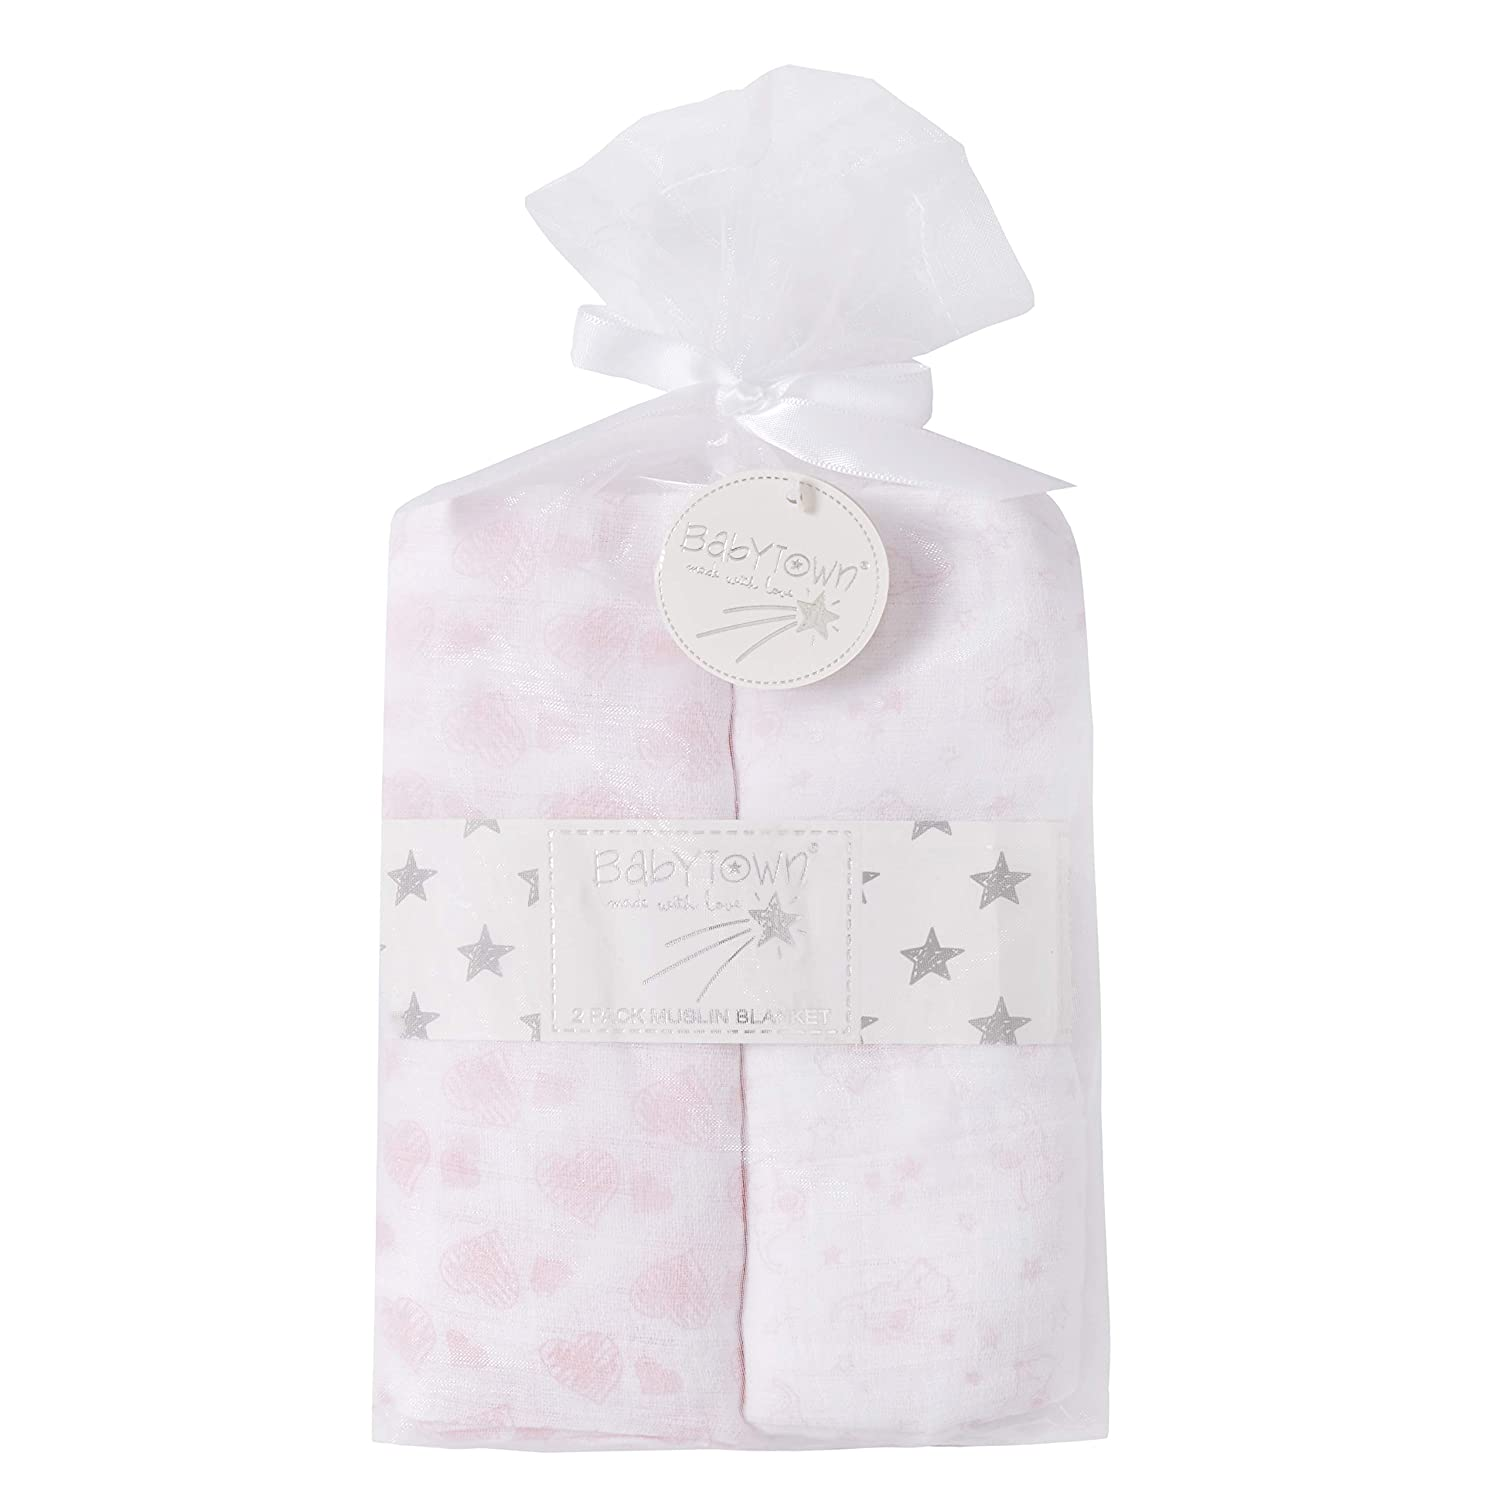 Grey Babies Two Pack Babies Muslin Squares in Gift Bag Silver Blue Or Pink Detail Free Gift of Burpee Cloth